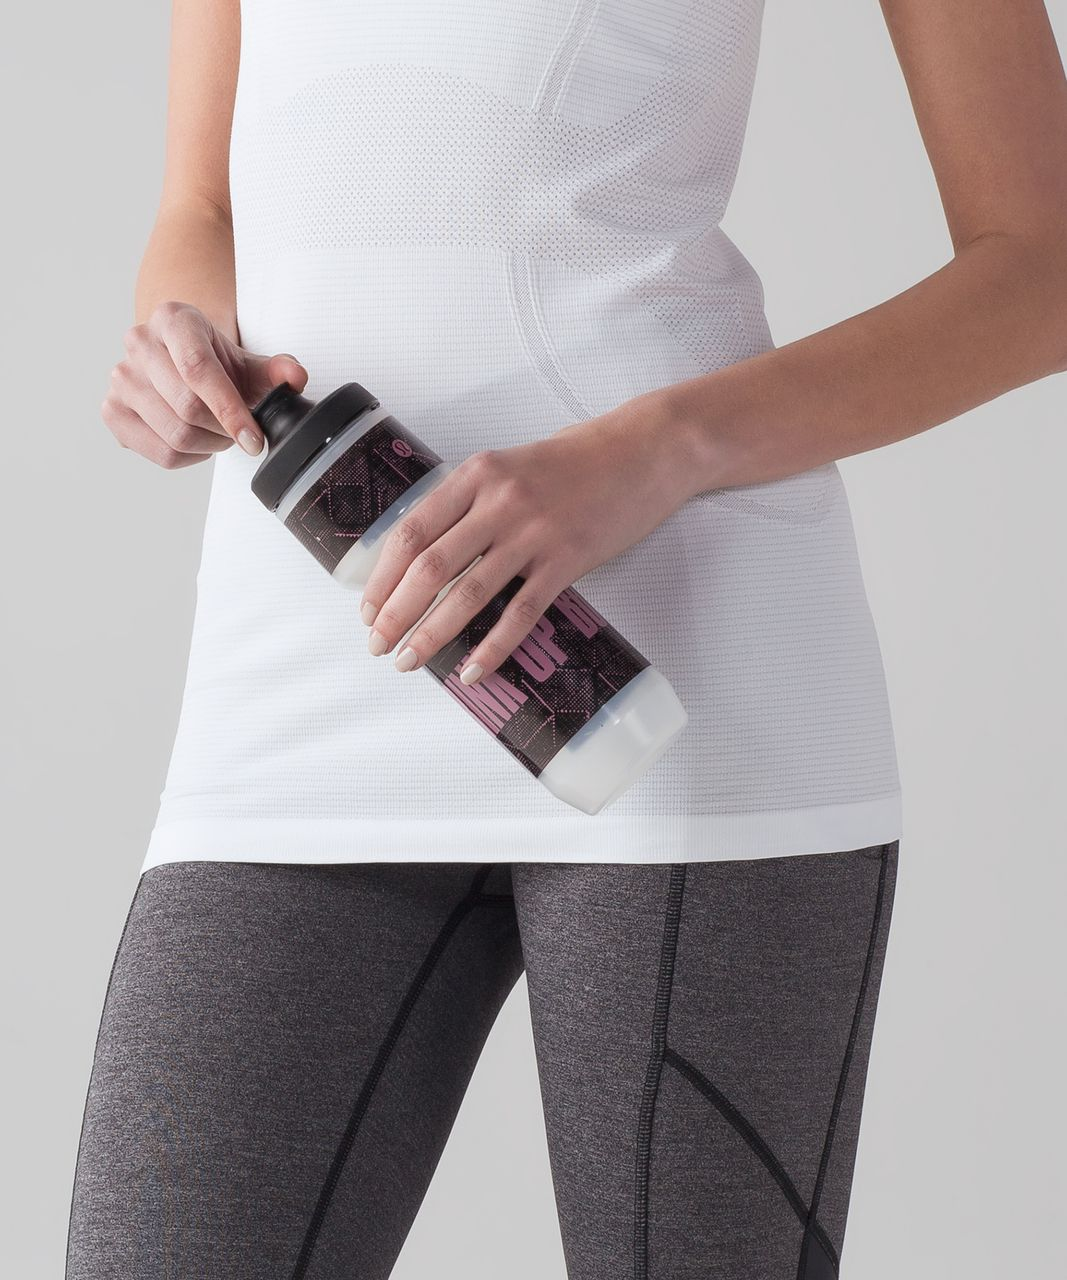 Lululemon Purist Cycling Waterbottle - Purist Drink Up